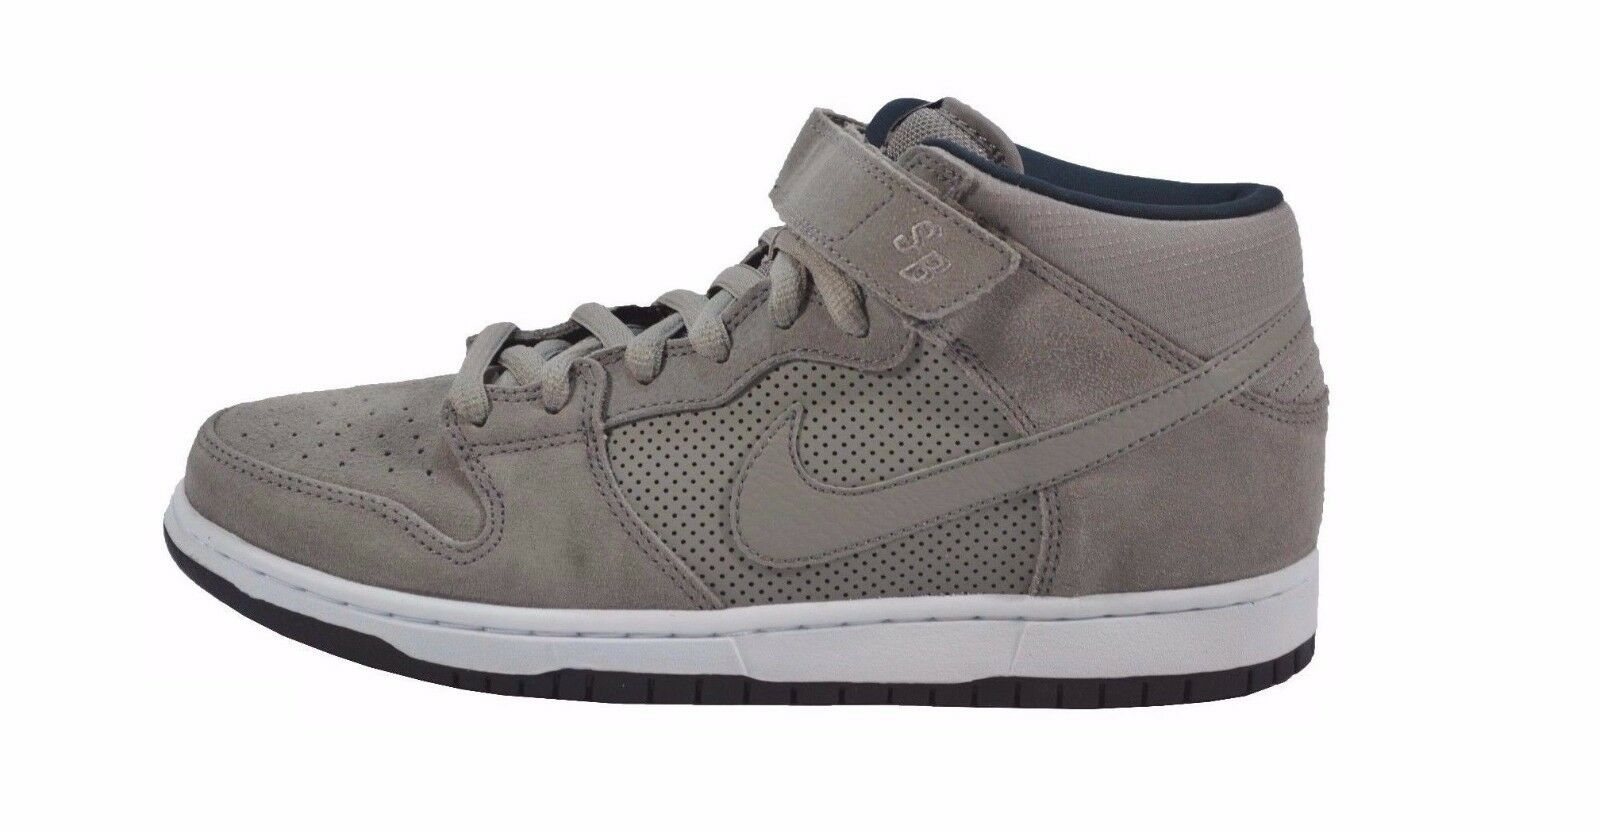 Nike DUNK  MID PRO SB Sport  DUNK Gris  blanc Skateboarding Discounted (219) homme chaussures f14b93